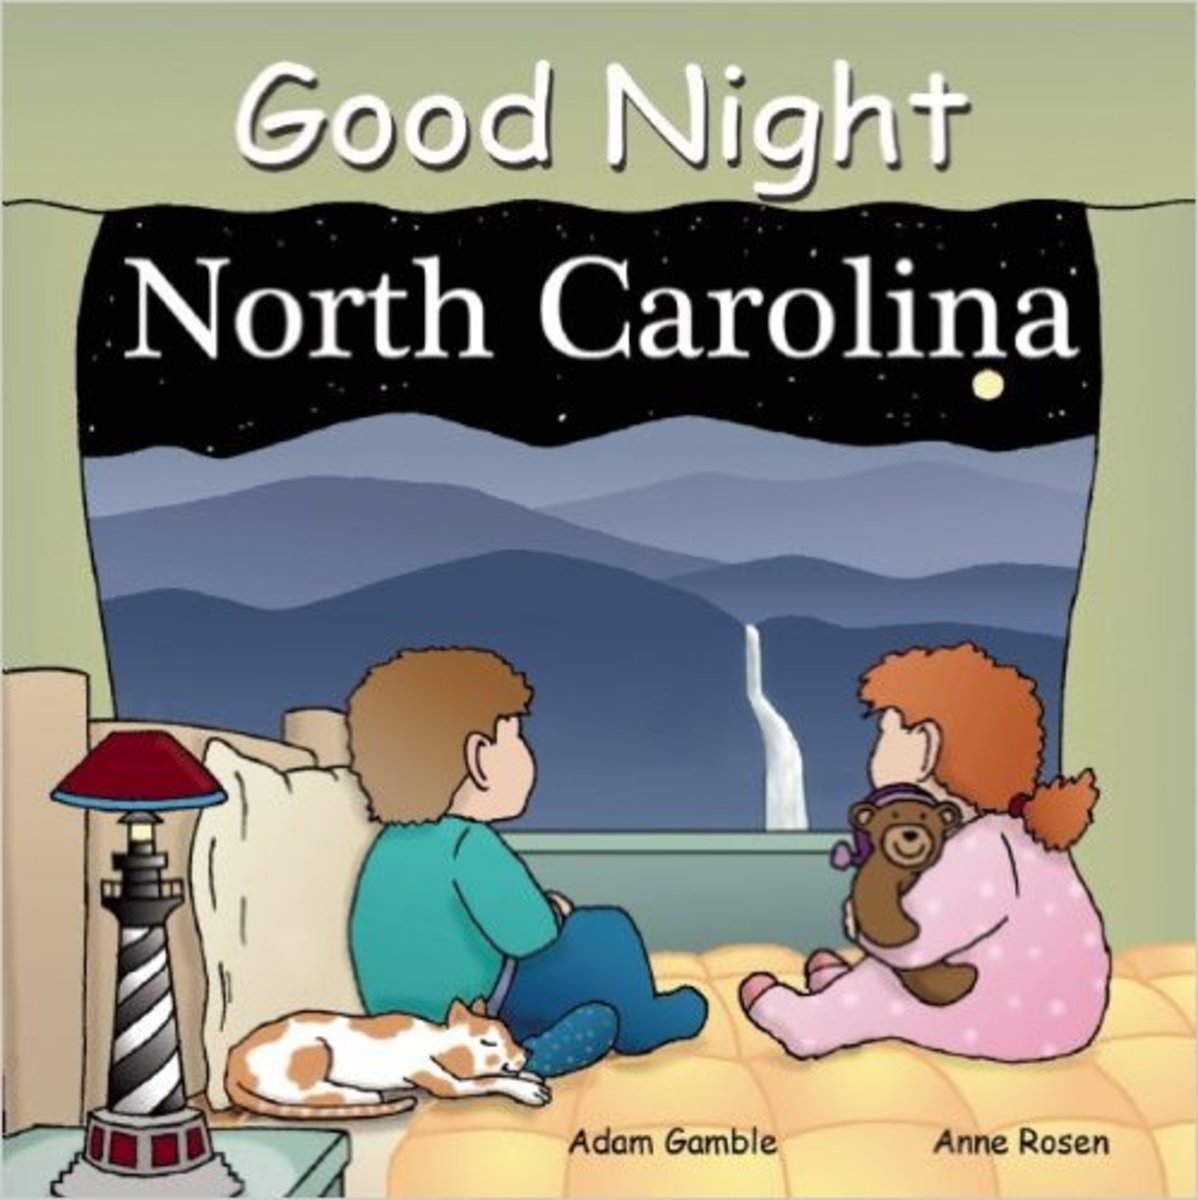 Good Night North Carolina (Good Night Our World) Board book by Adam Gamble - Image credit: amazon.com